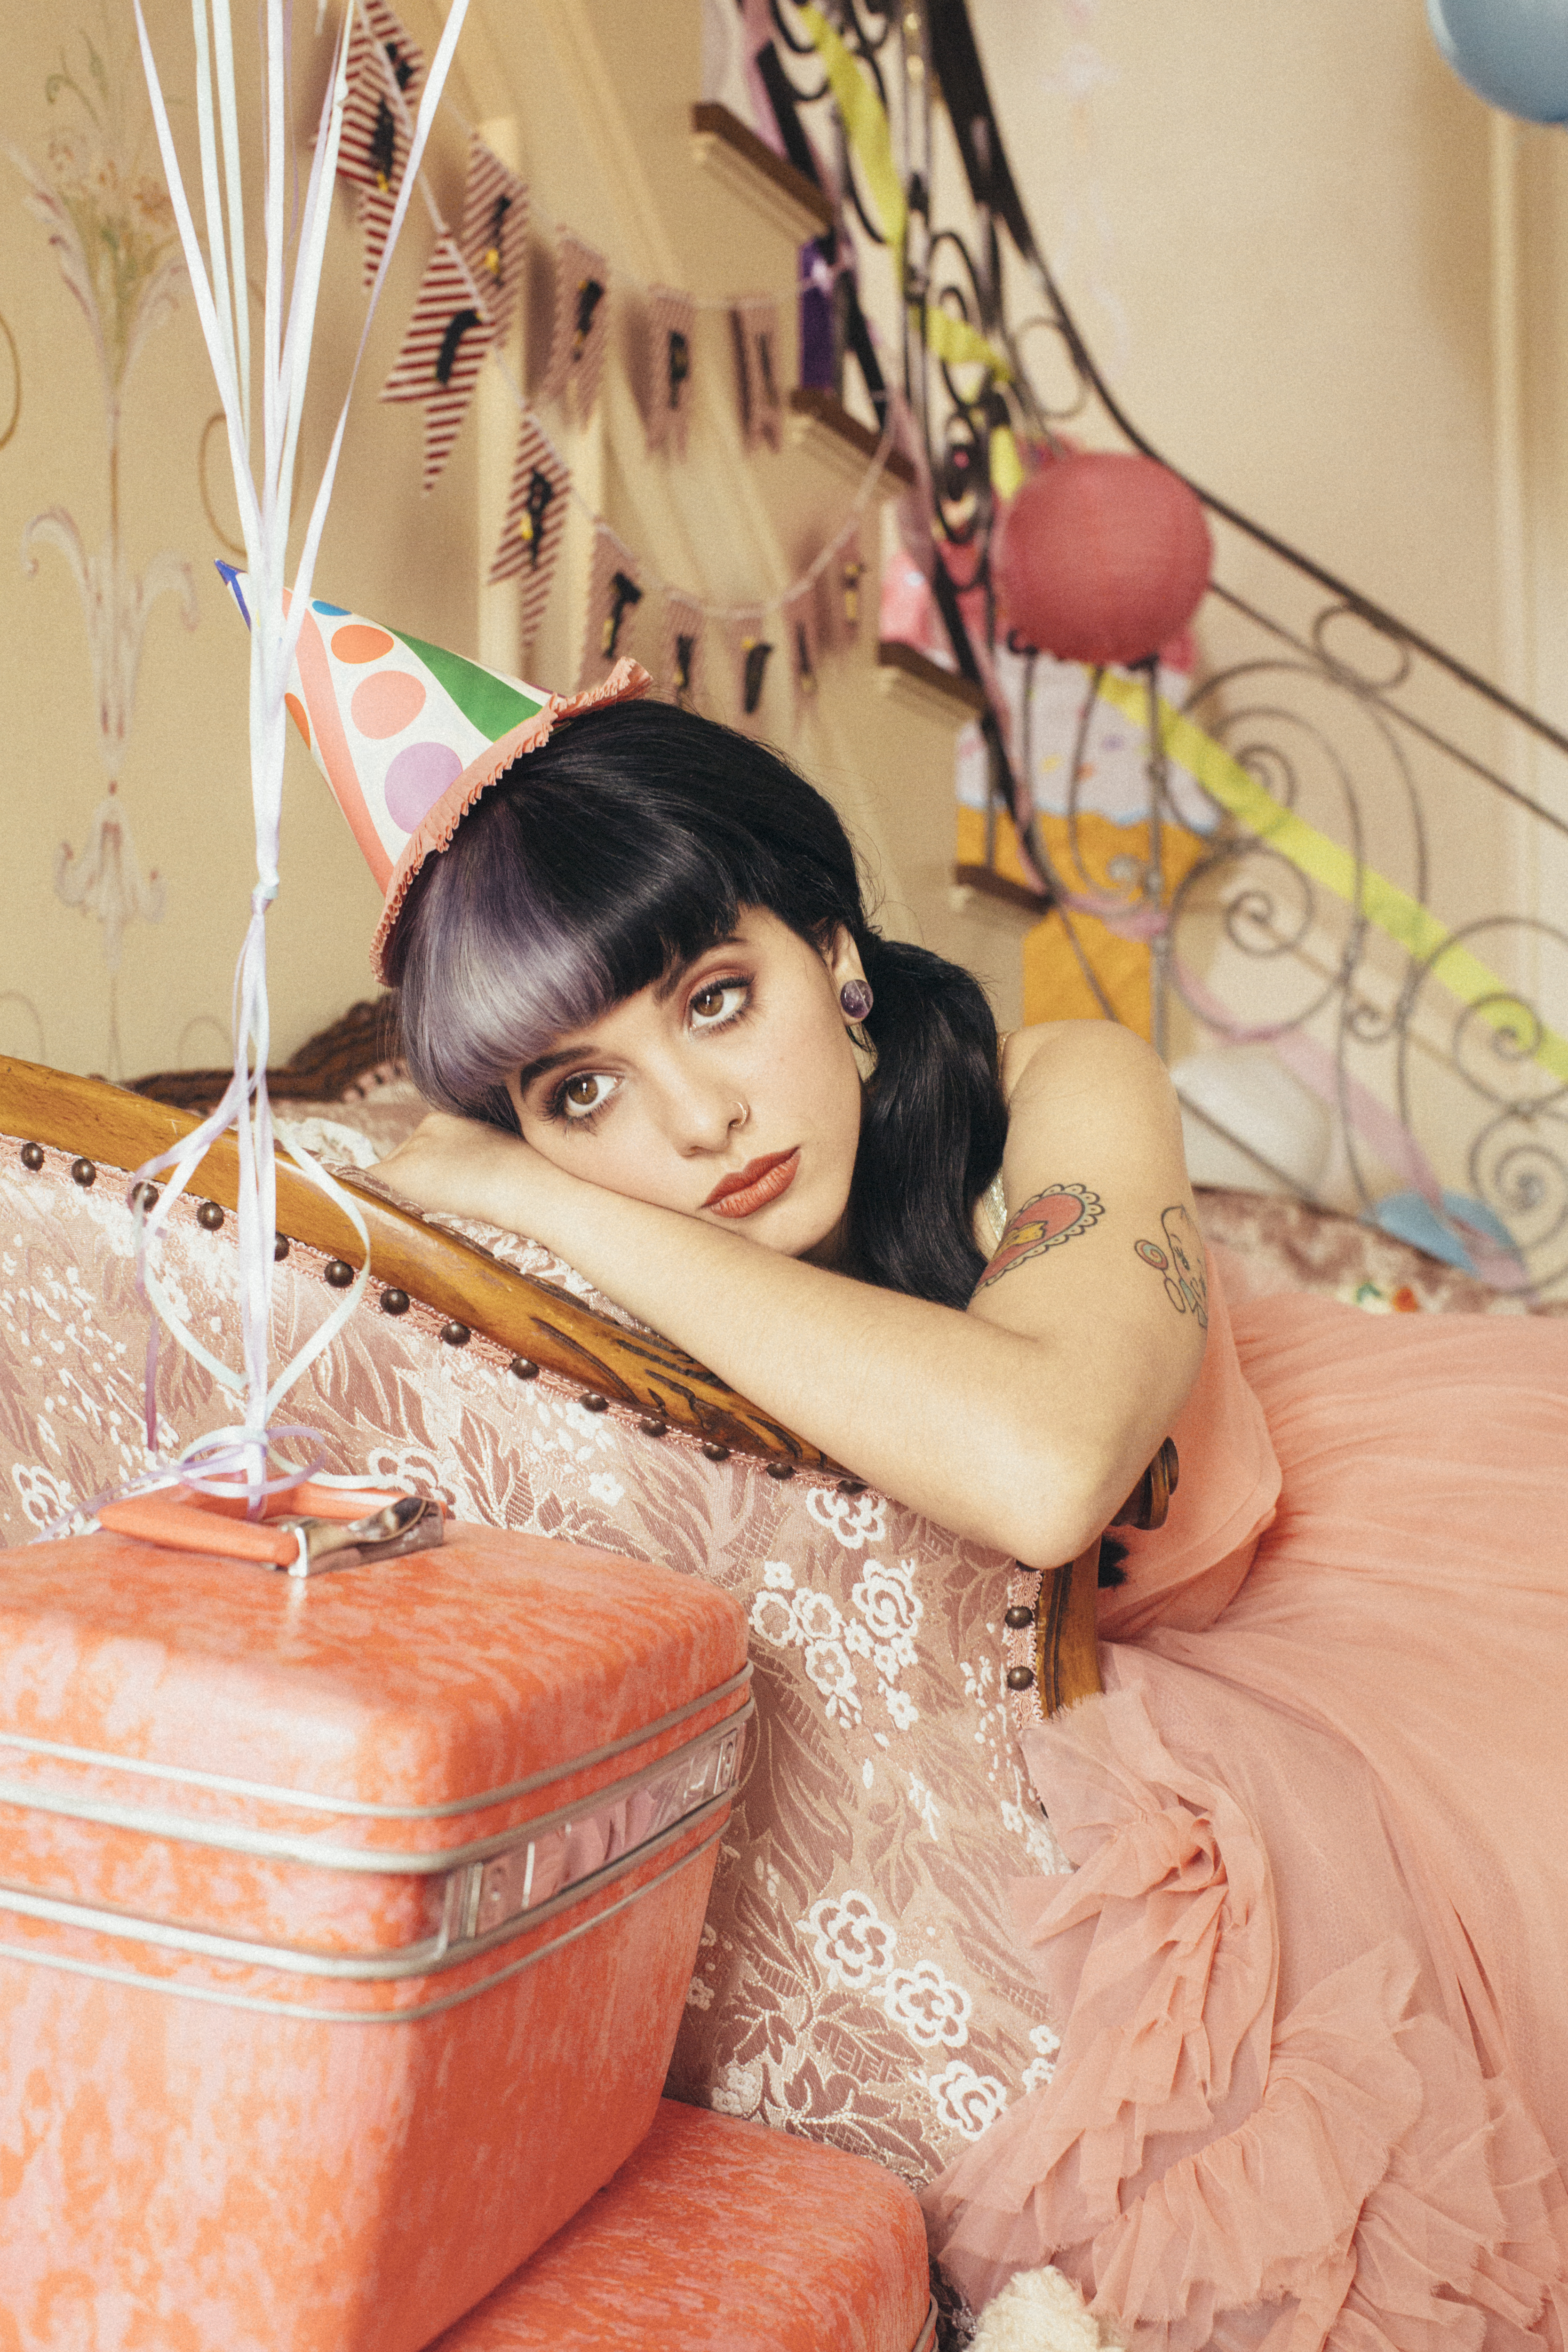 Melanie Martinez promotional photo wearing pink birthday dress with a birthday hat, but pouting.